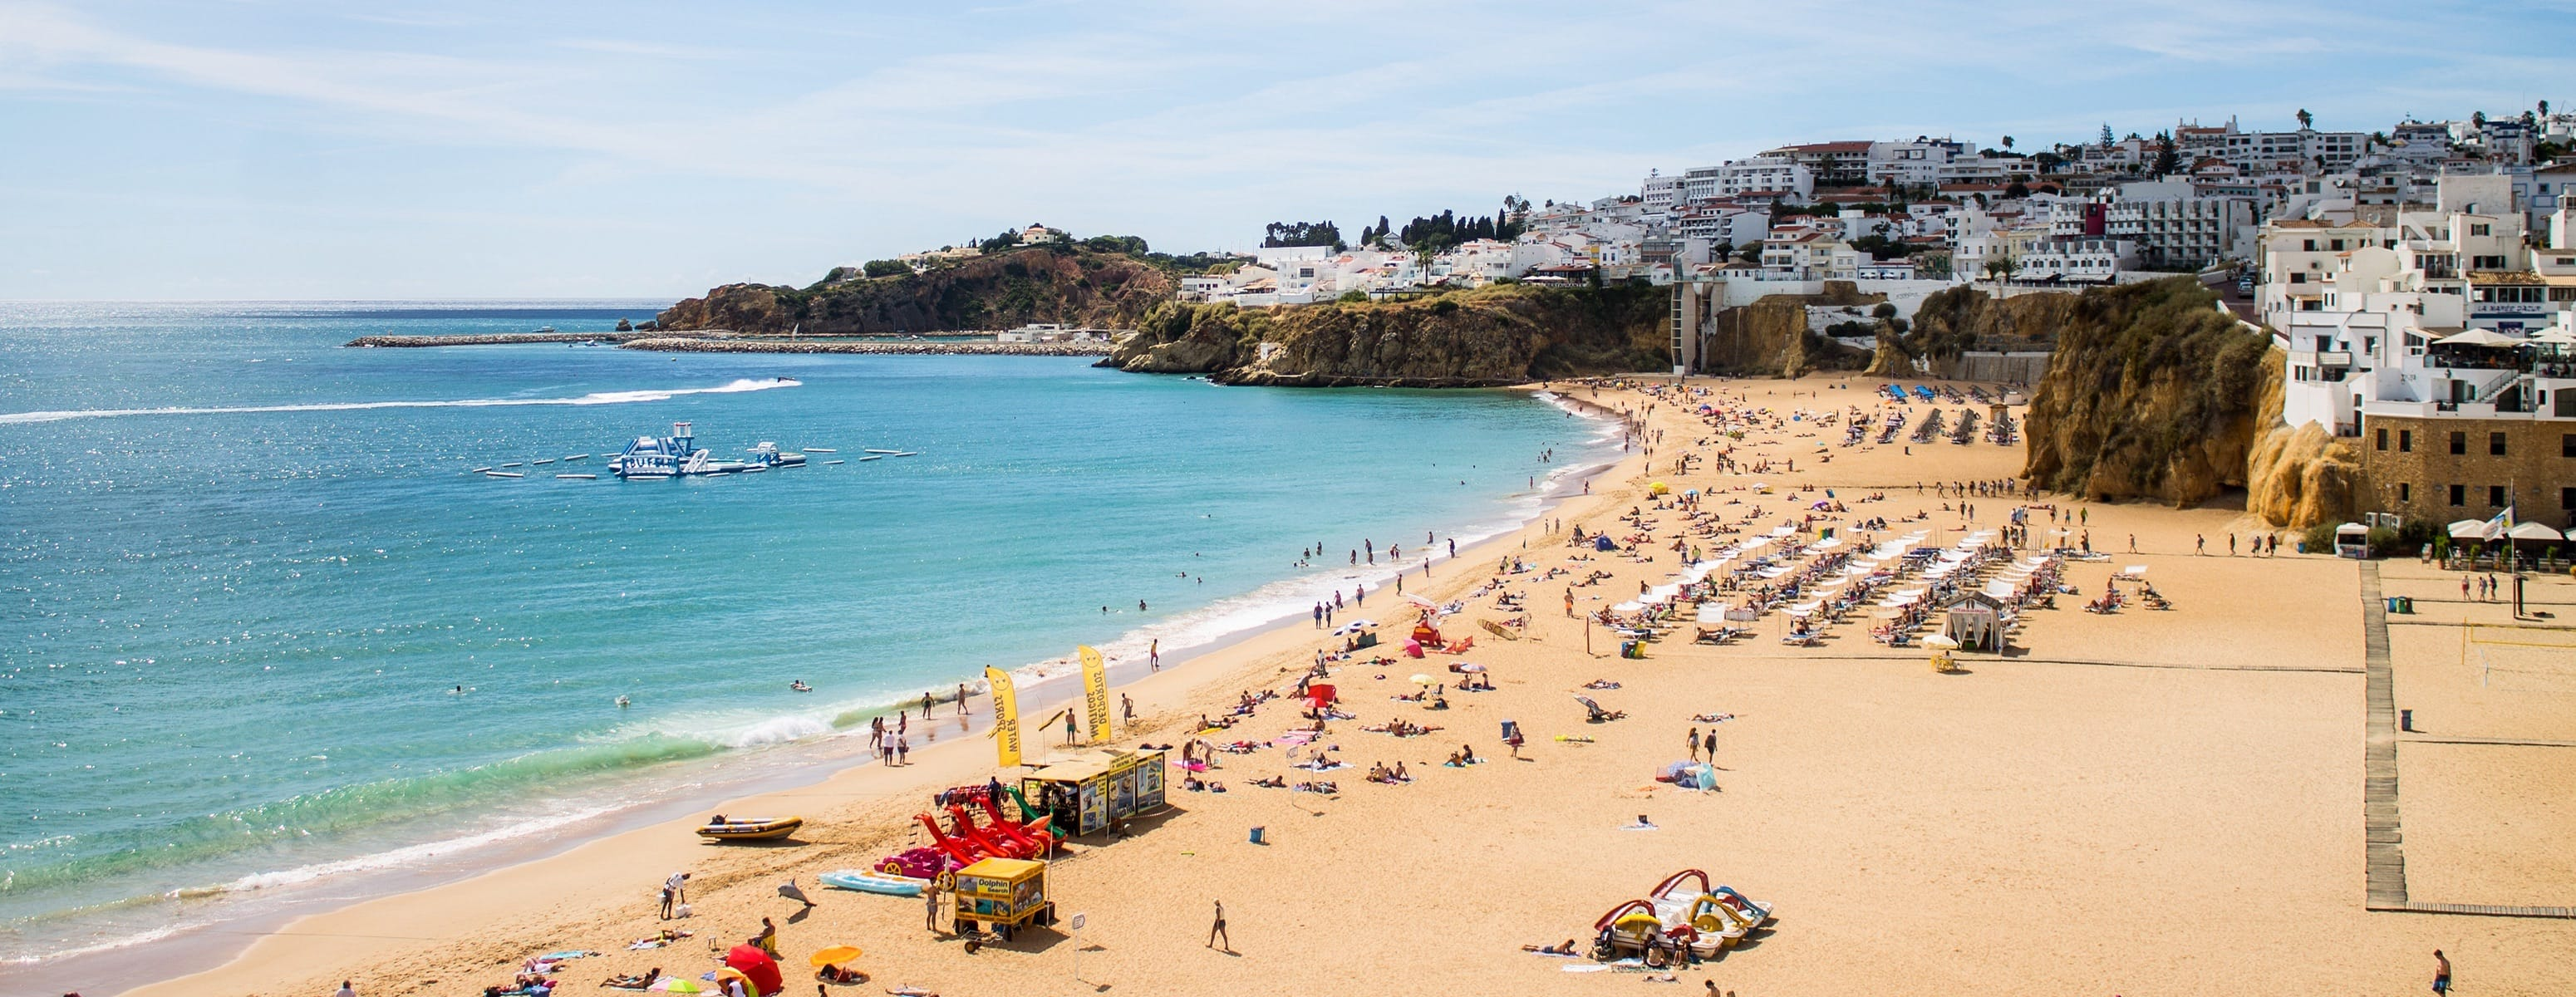 Vacation rentals in Albufeira